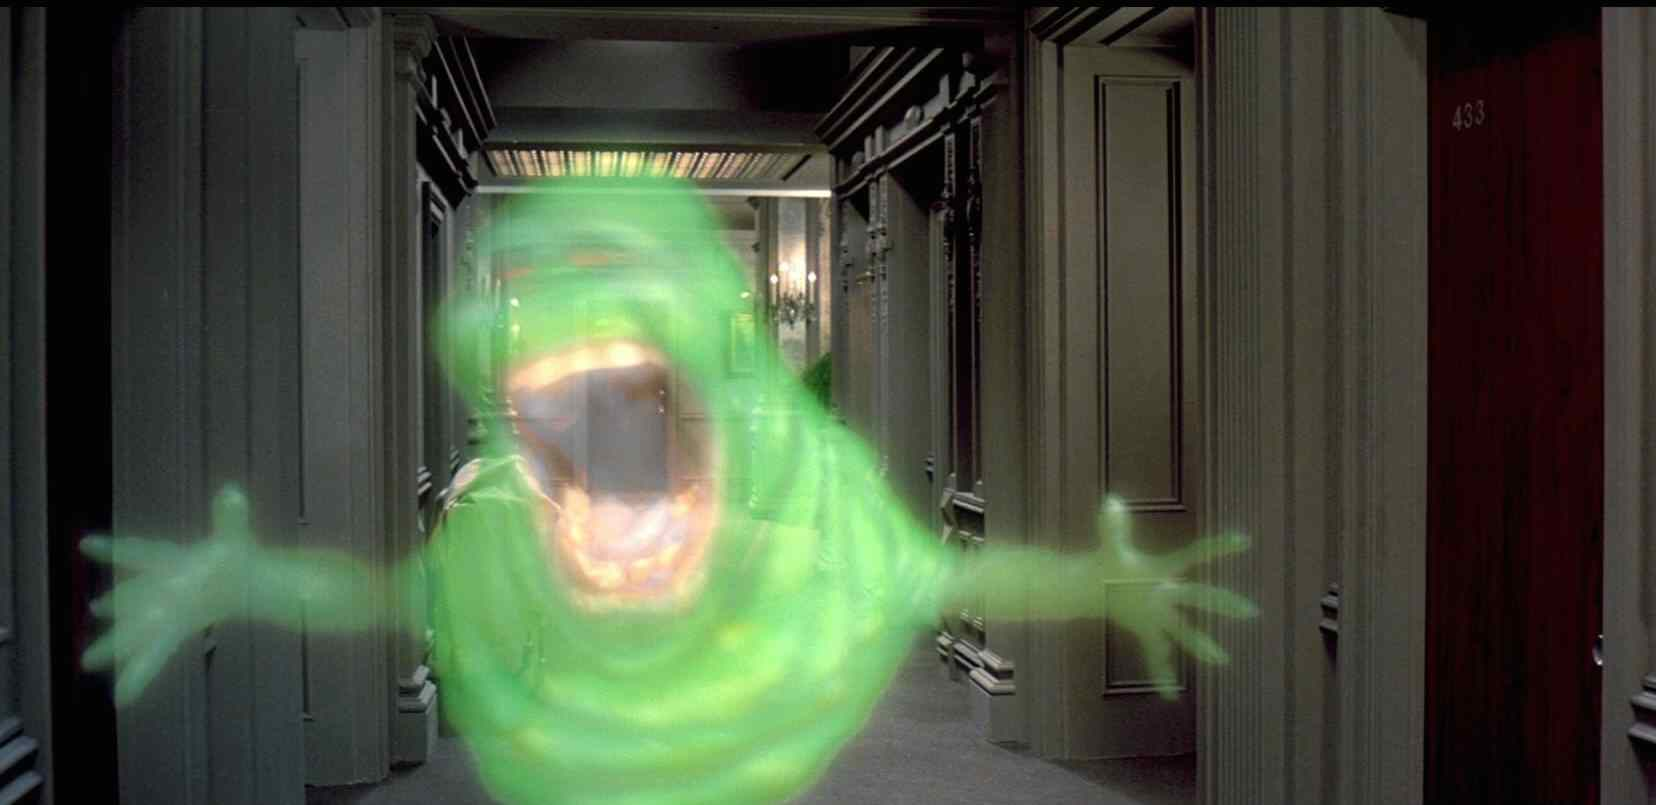 Slimer doing what he does best in Ivan Reitman's Ghostbusters.